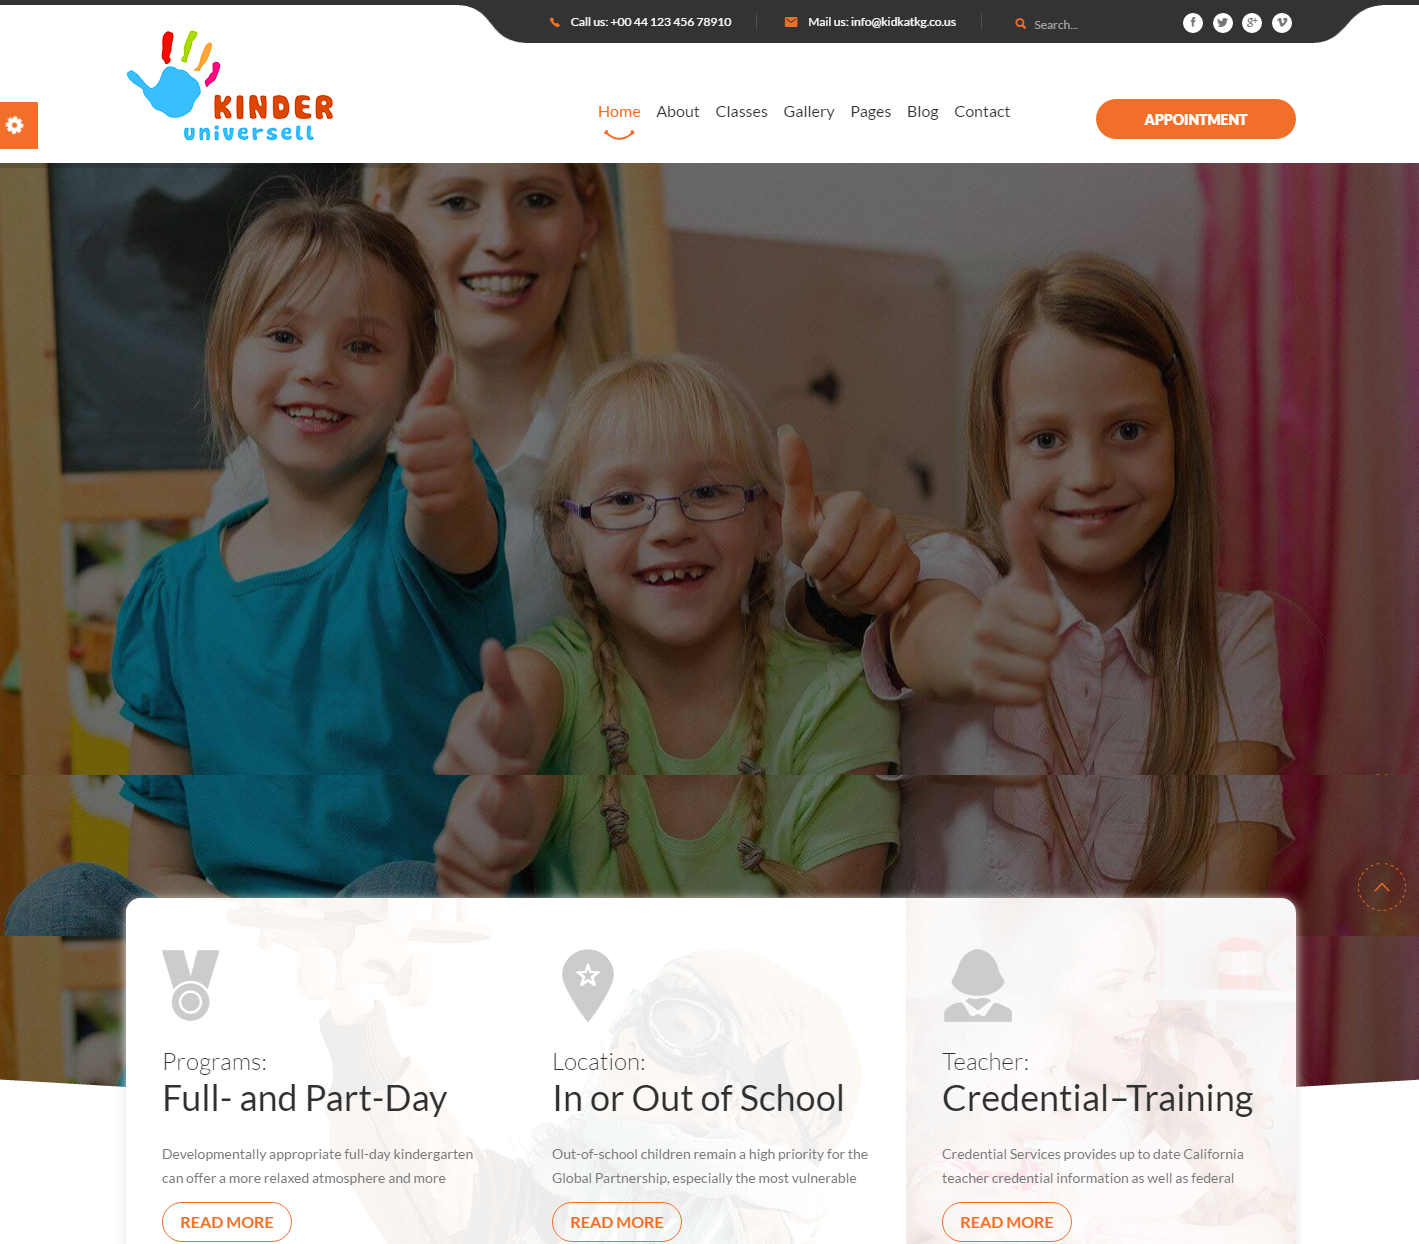 kinder-premium-wordpress-theme